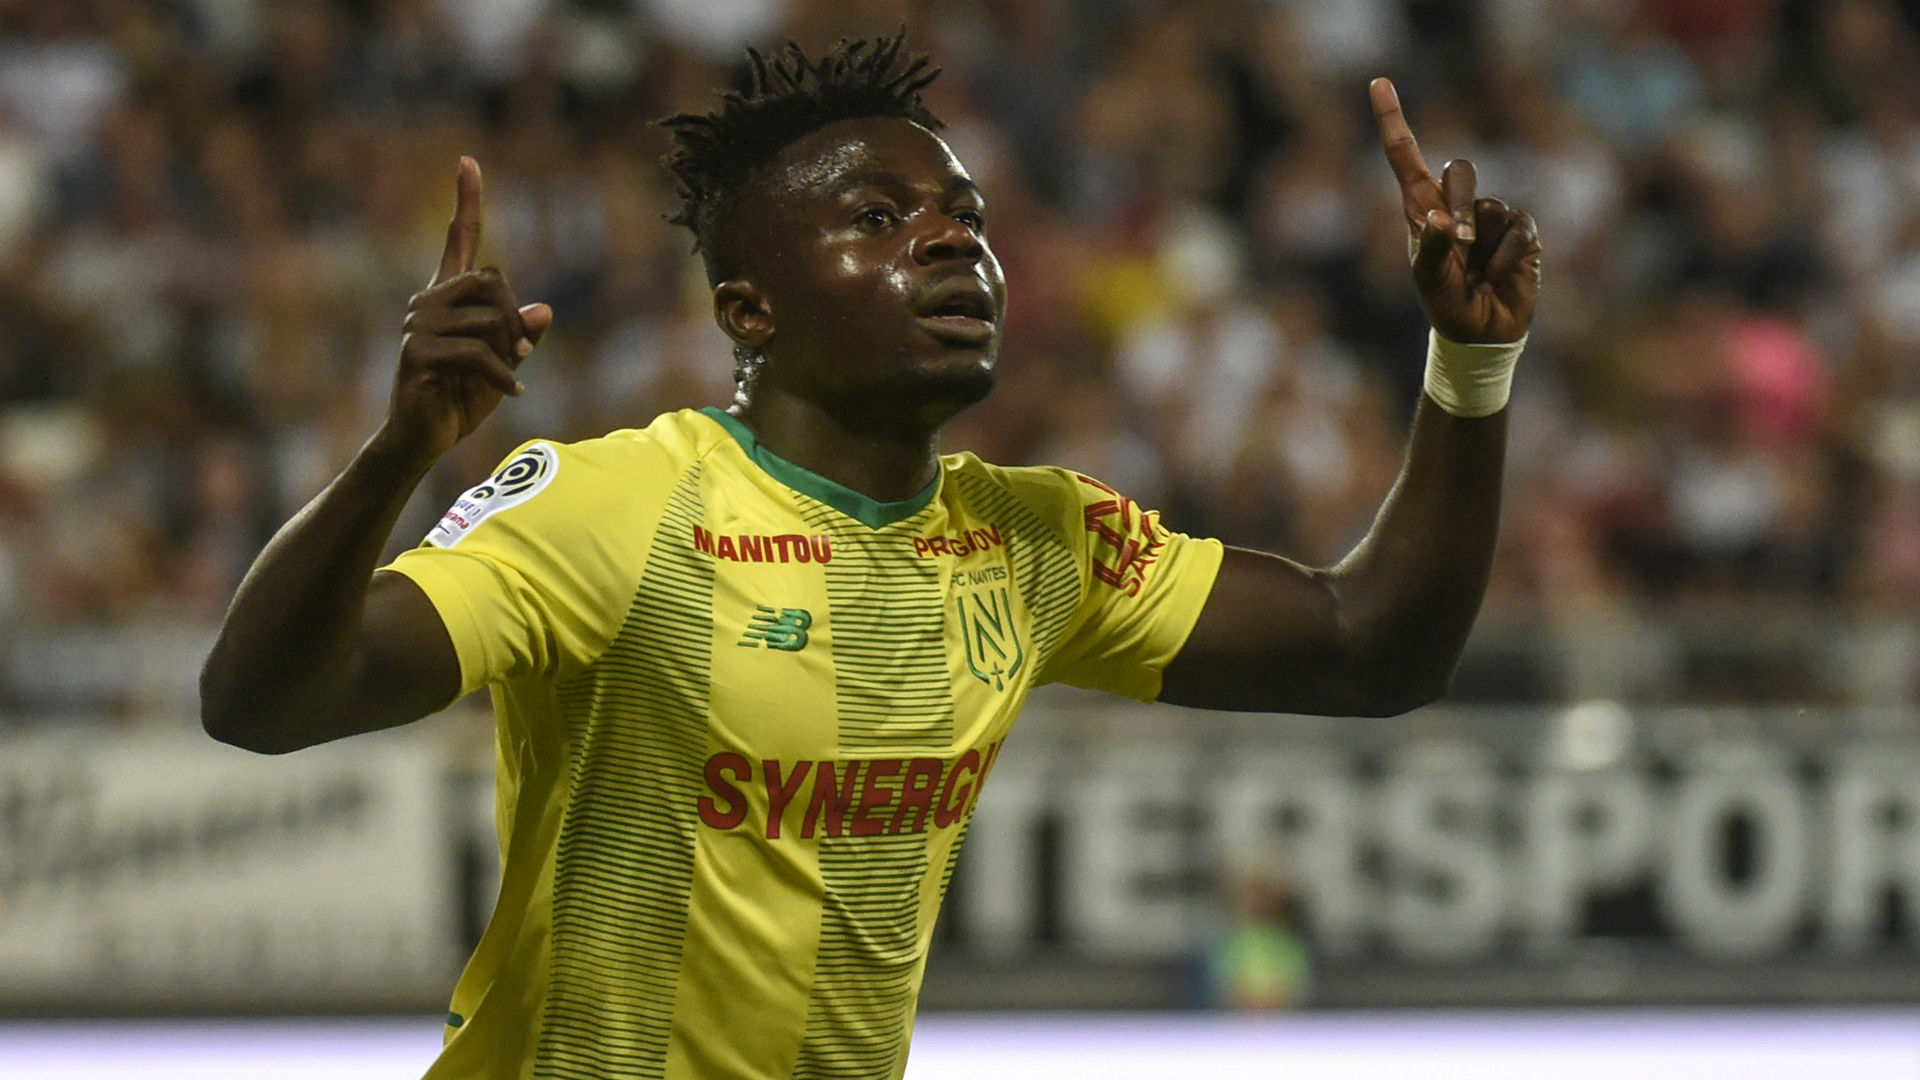 Simon Cherishes 'Amazing' Start In France, Seeks Goals With Super Eagles